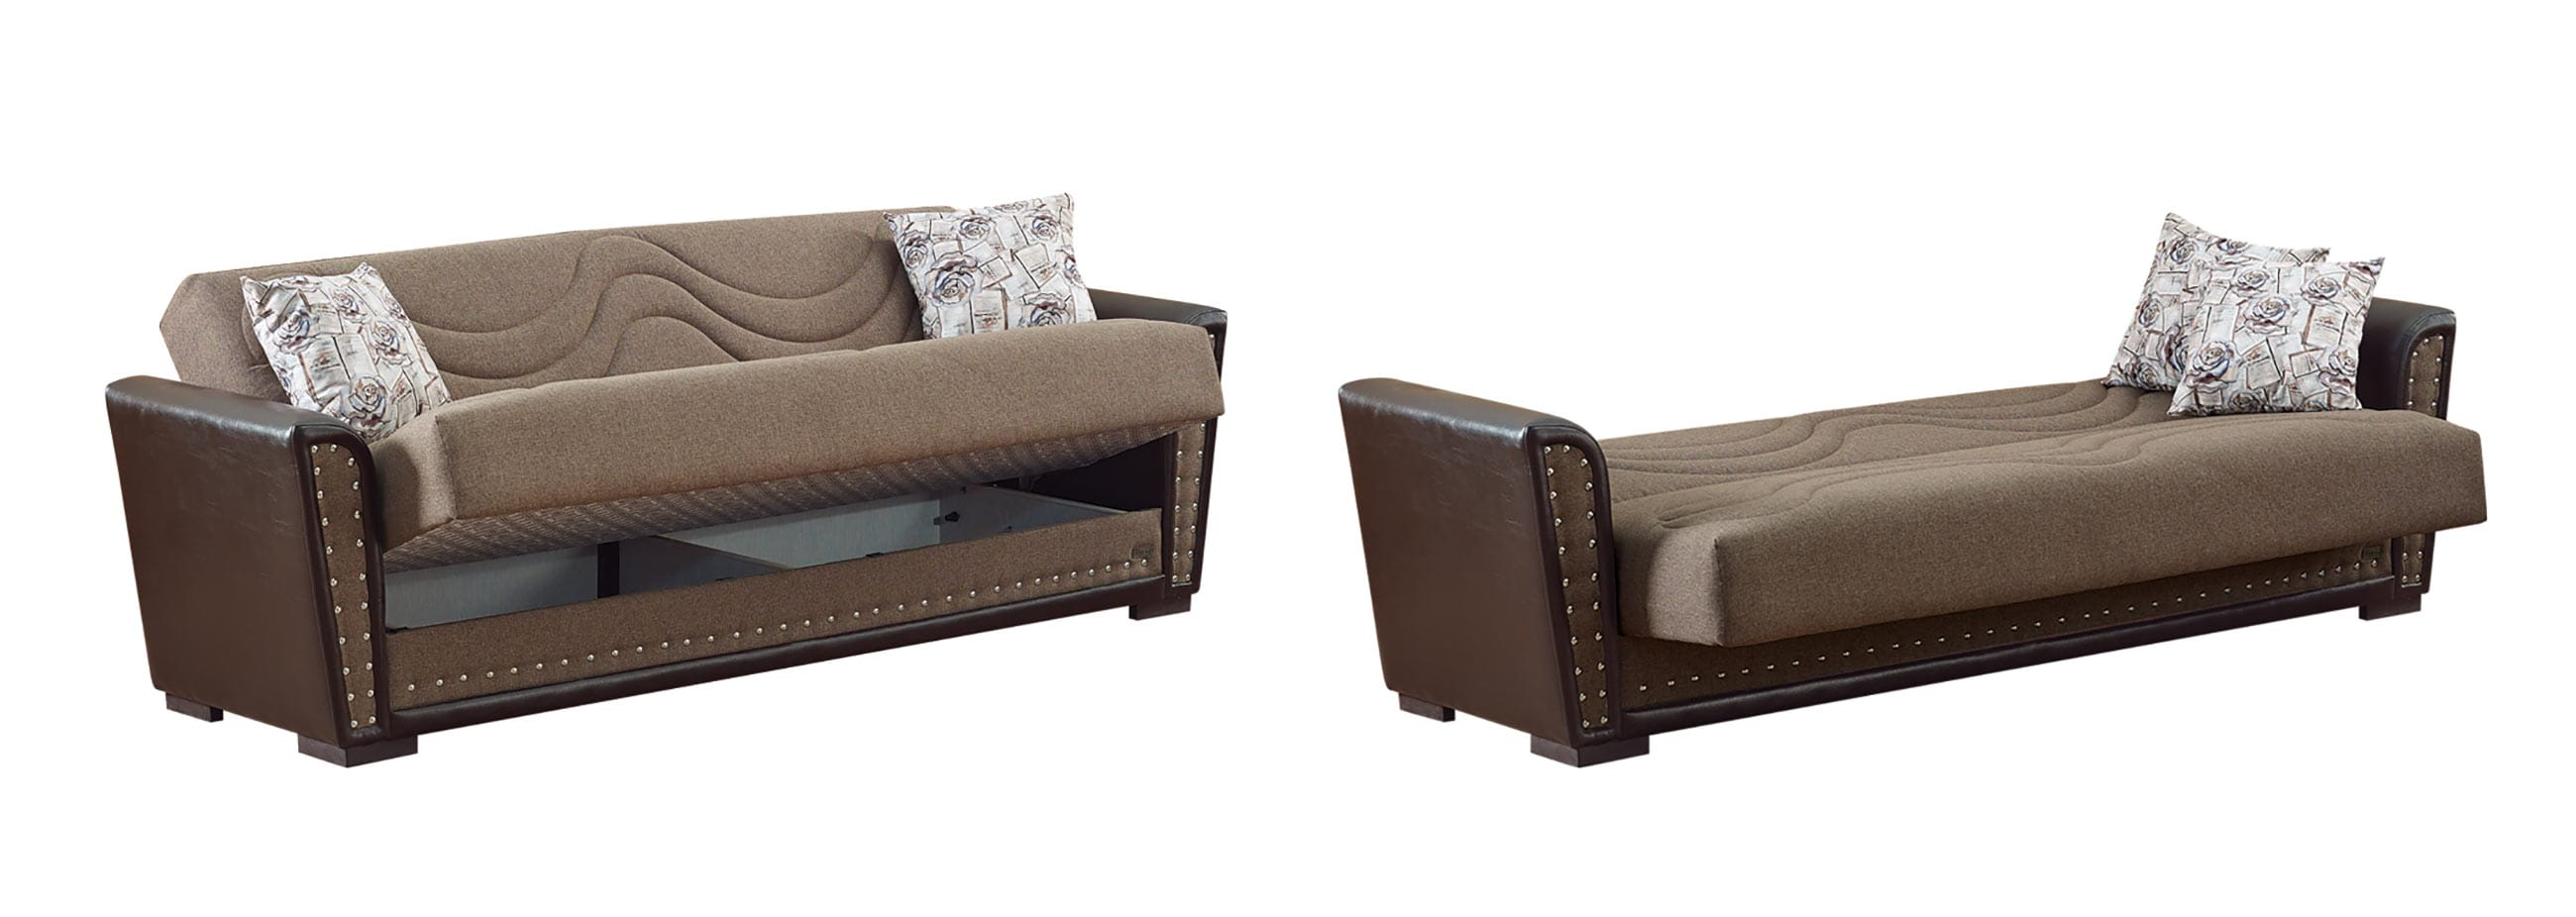 Toronto Brown Fabric Sofa Bed By Empire